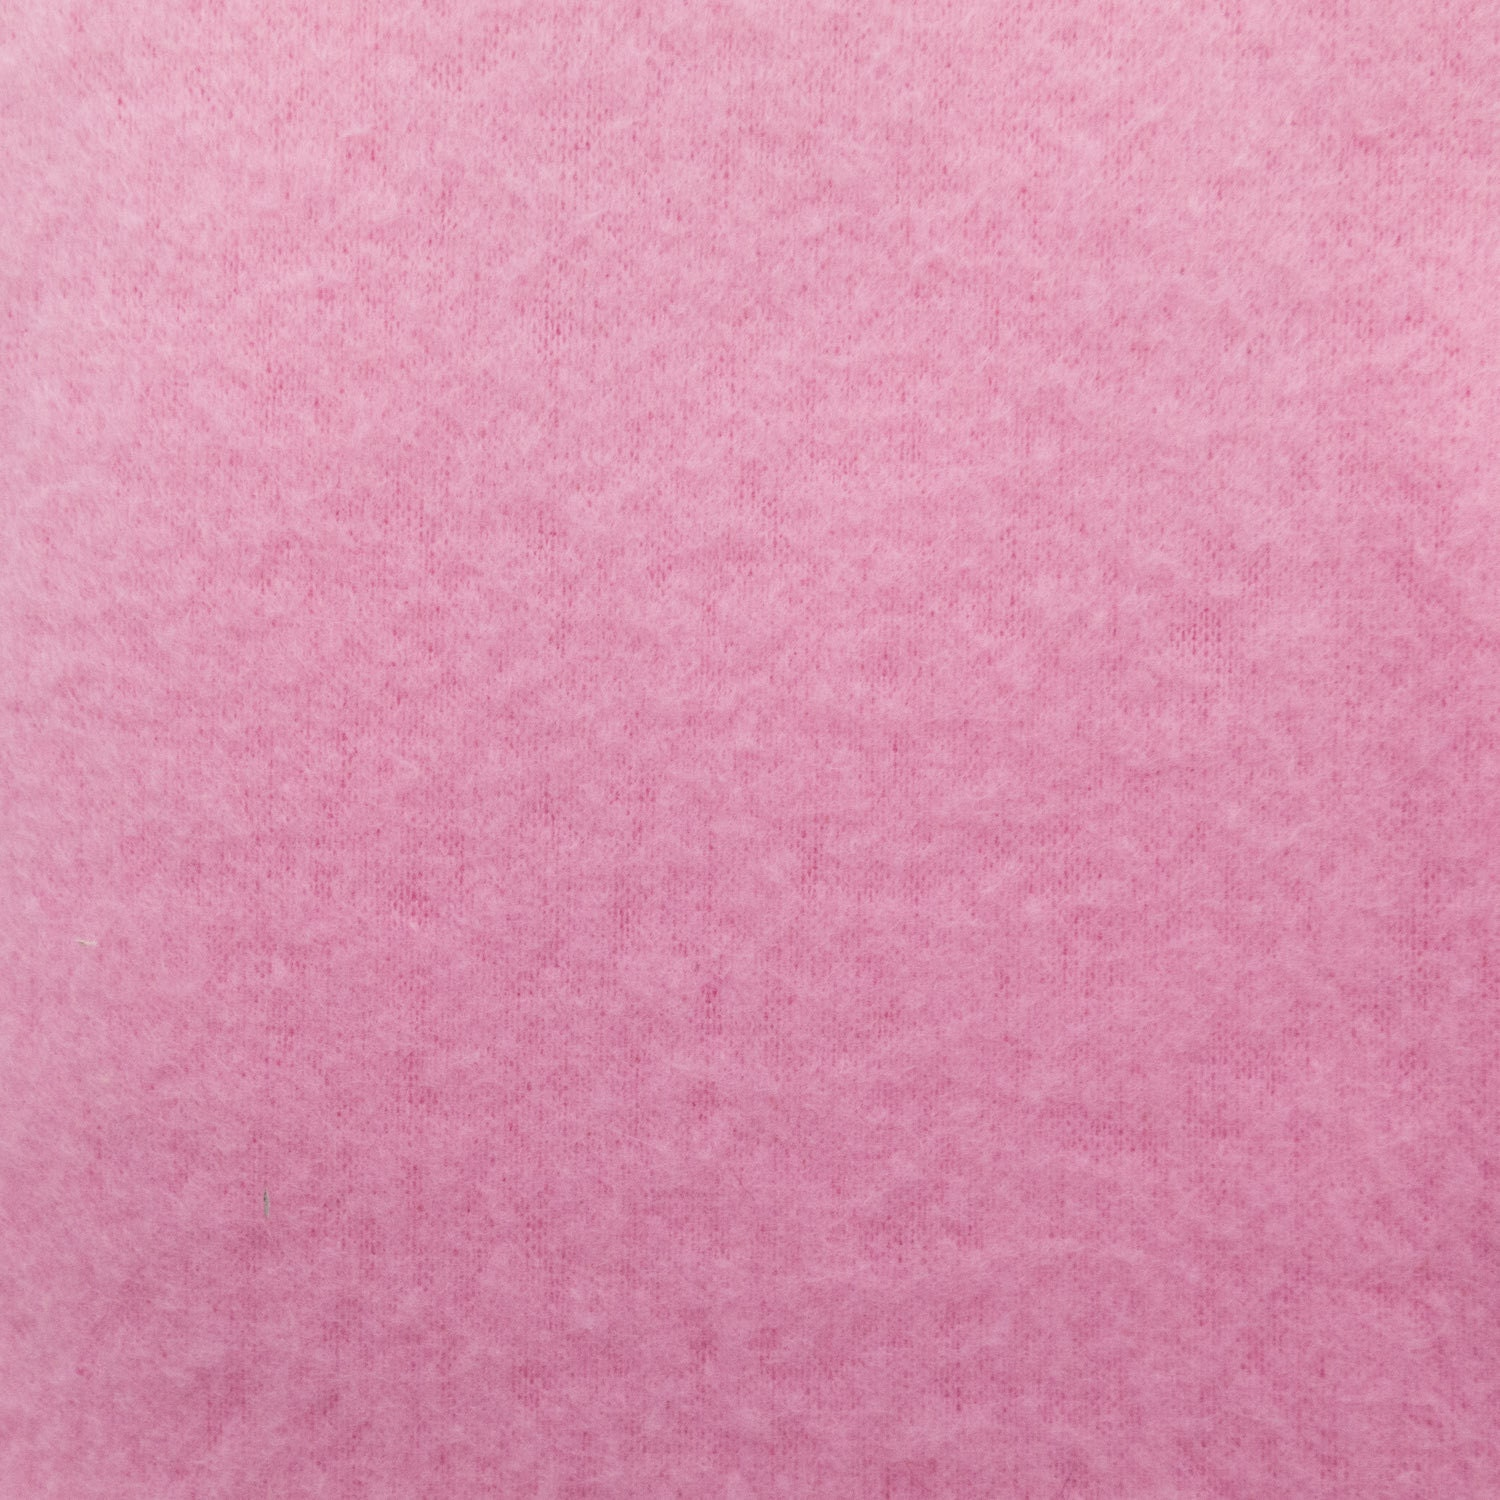 Fleece solid baby pink 60 inc fabric by the yard 1 yard for Baby fabric by the yard